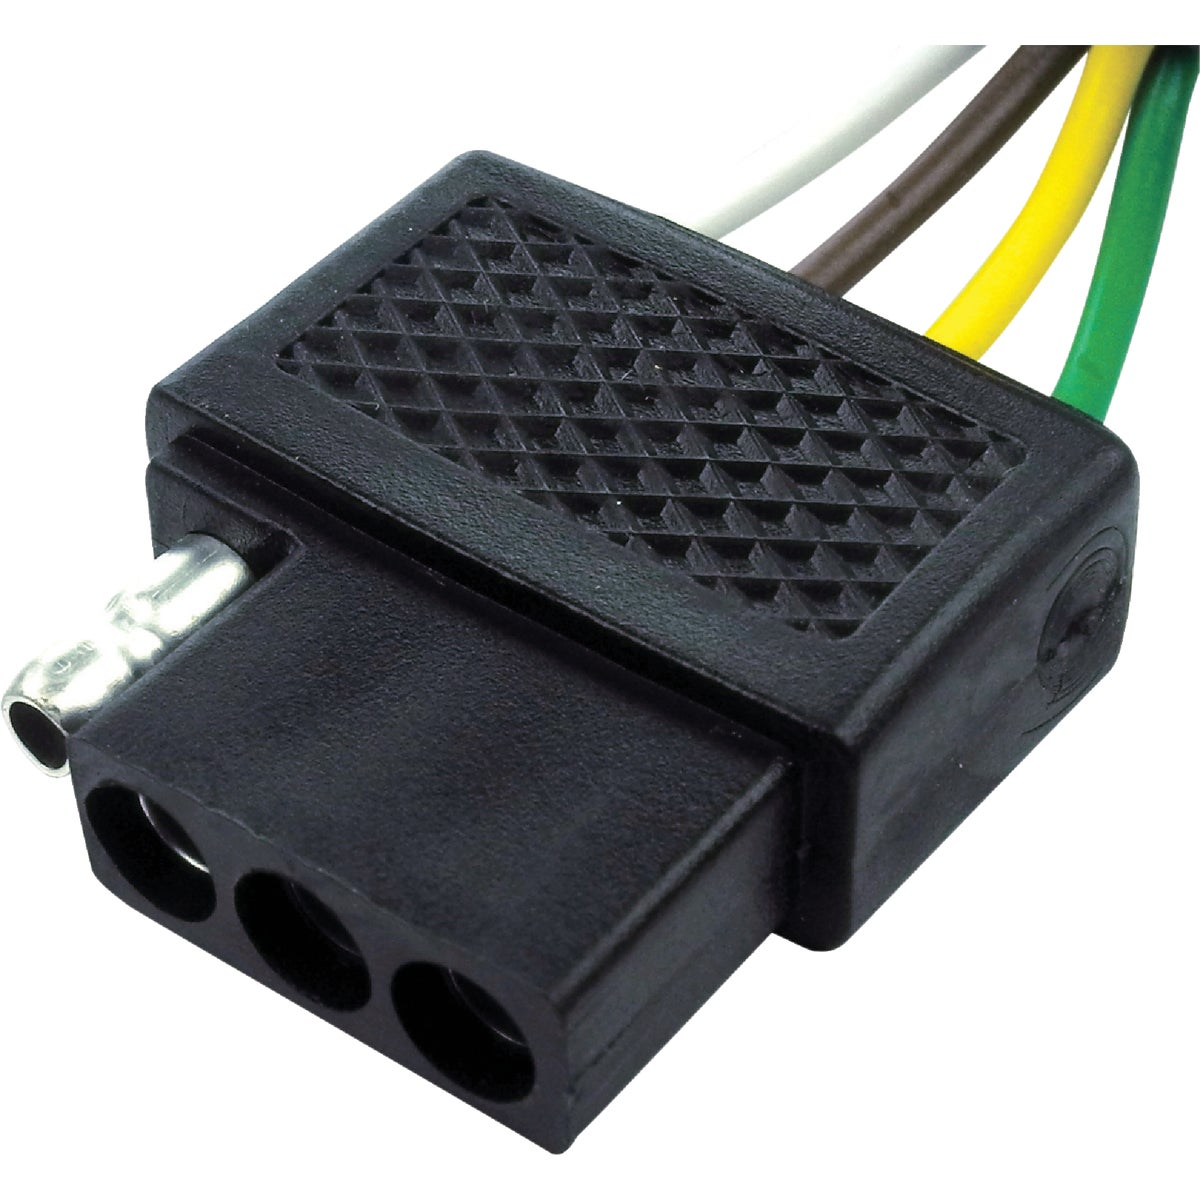 CAR SIDE CONNECTOR - 13901 by Seachoice Prod